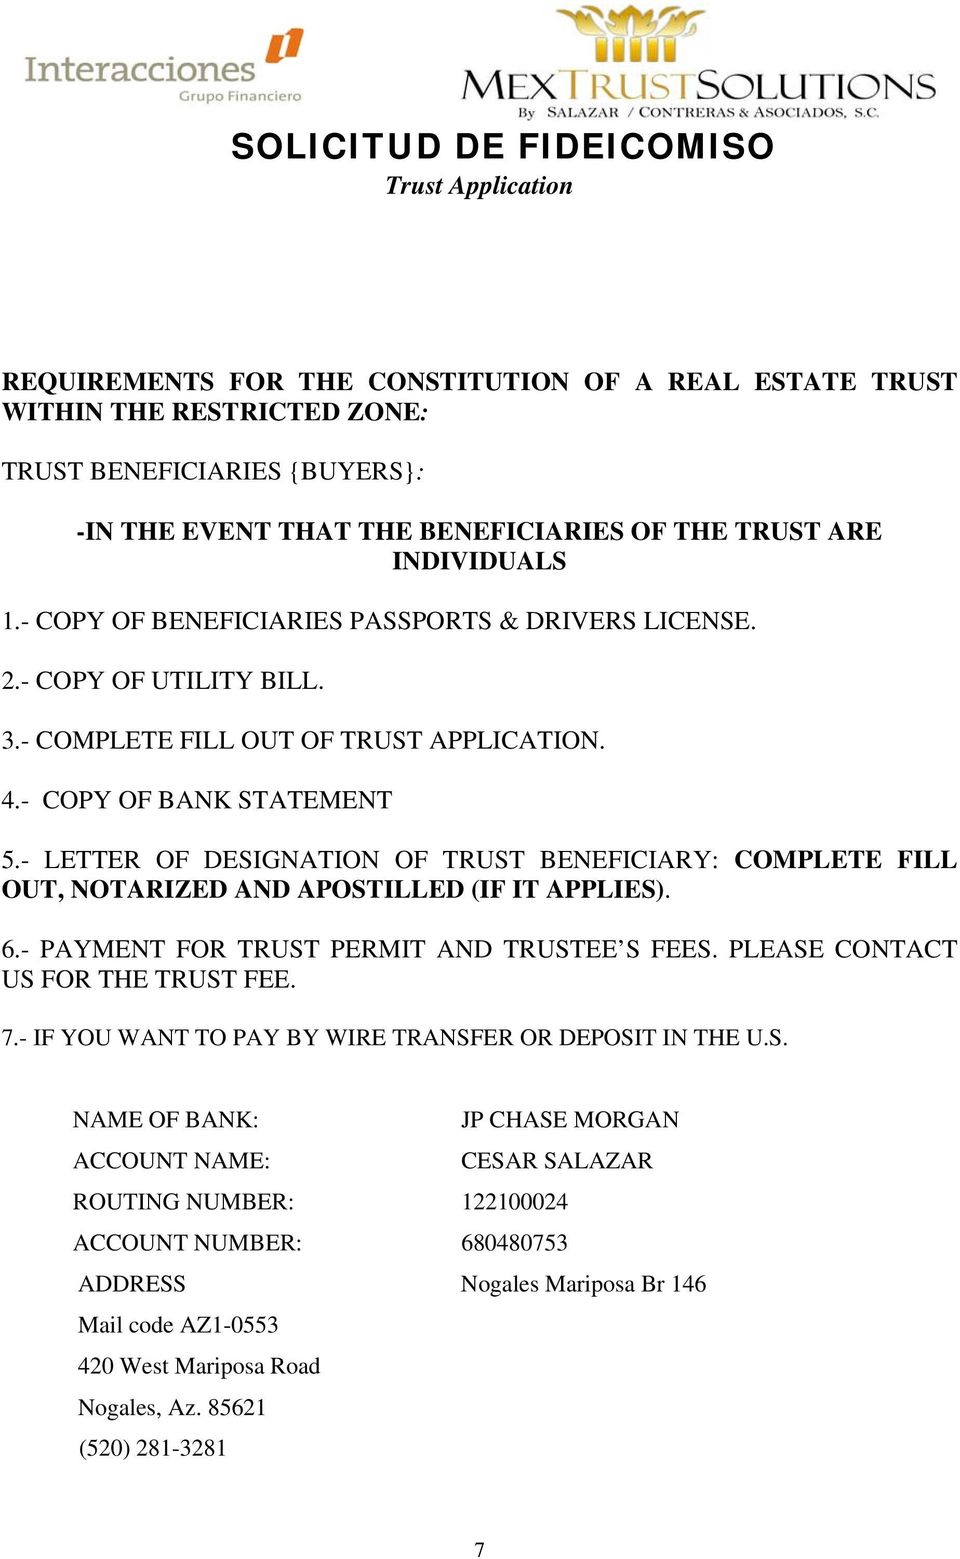 - LETTER OF DESIGNATION OF TRUST BENEFICIARY: COMPLETE FILL OUT, NOTARIZED AND APOSTILLED (IF IT APPLIES). 6.- PAYMENT FOR TRUST PERMIT AND TRUSTEE S FEES. PLEASE CONTACT US FOR THE TRUST FEE. 7.